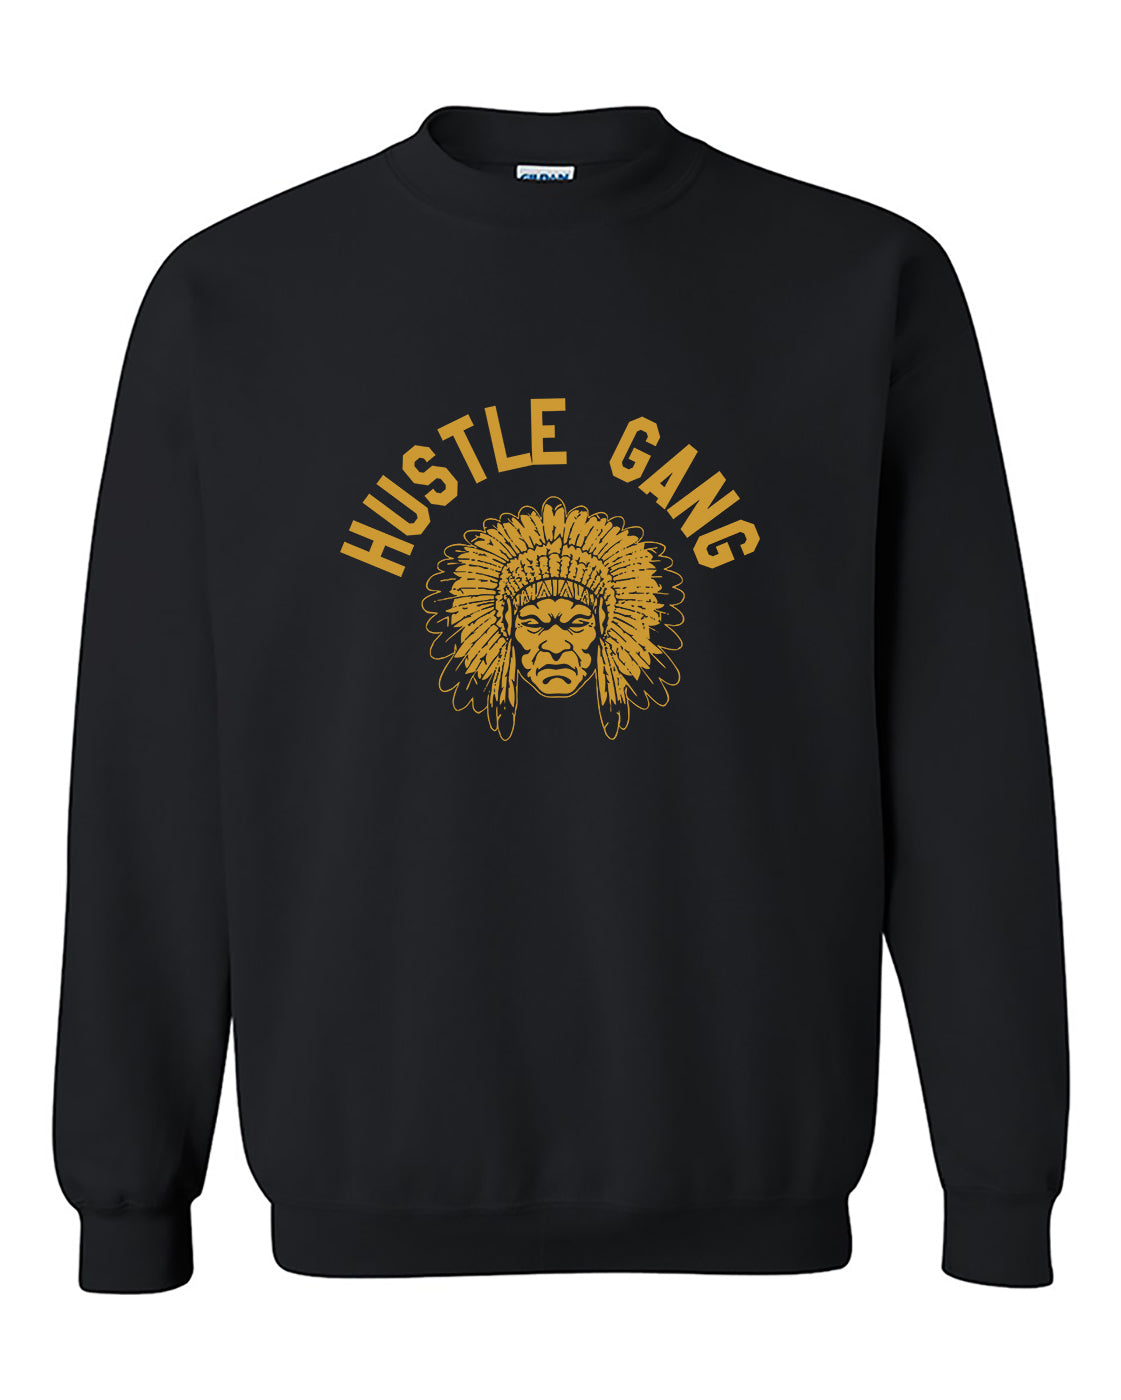 Hustle Gang headdressed Face front Crewneck Sweater